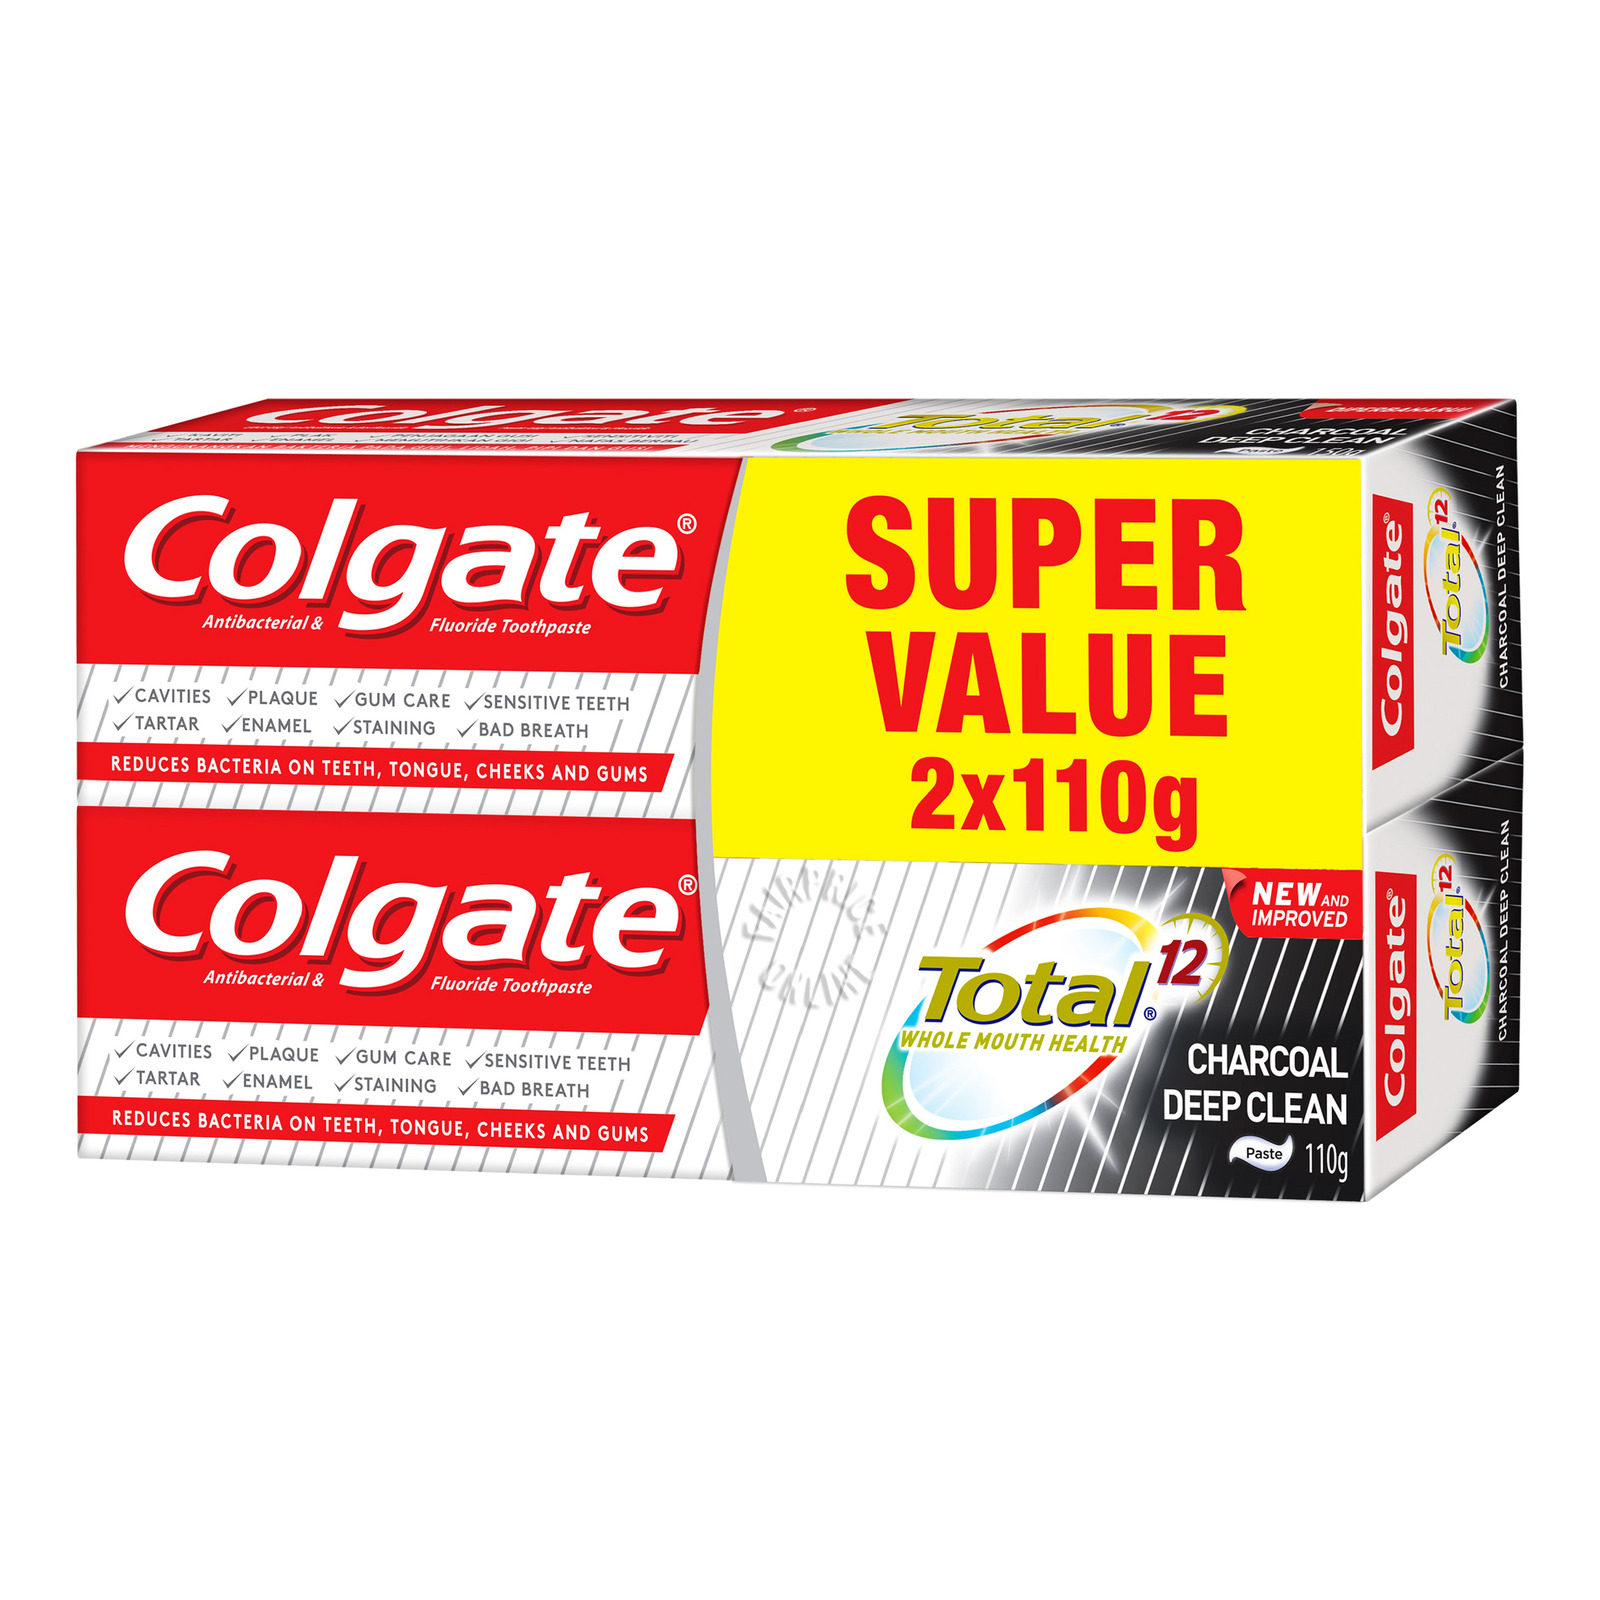 COLGATE total charcoal deep clean toothpaste twin pack 2x150g